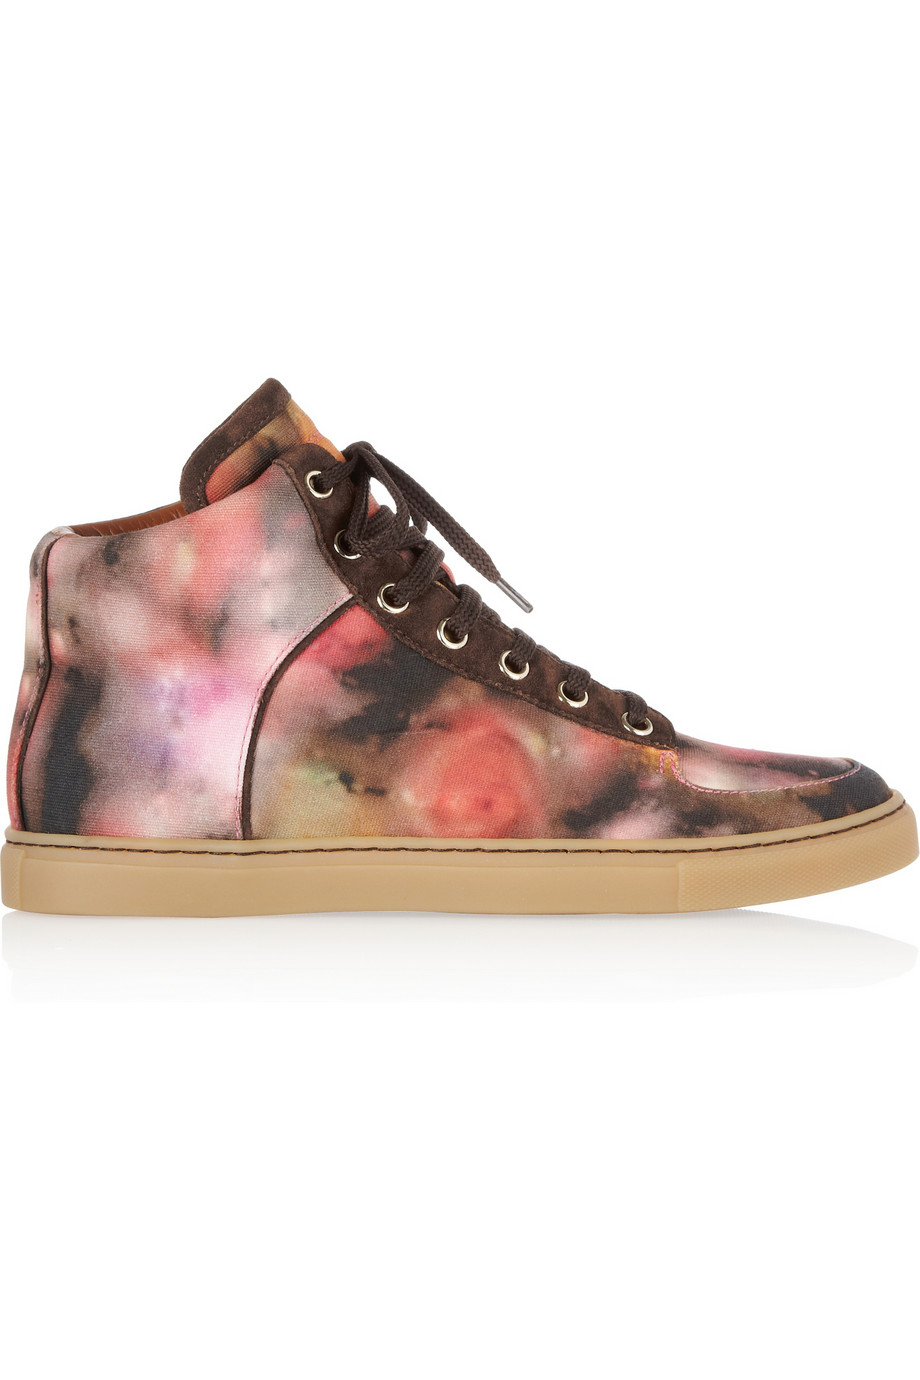 2c25a74ee1fc Lyst - Mulberry Blurry Bloom Canvas Hightop Sneakers